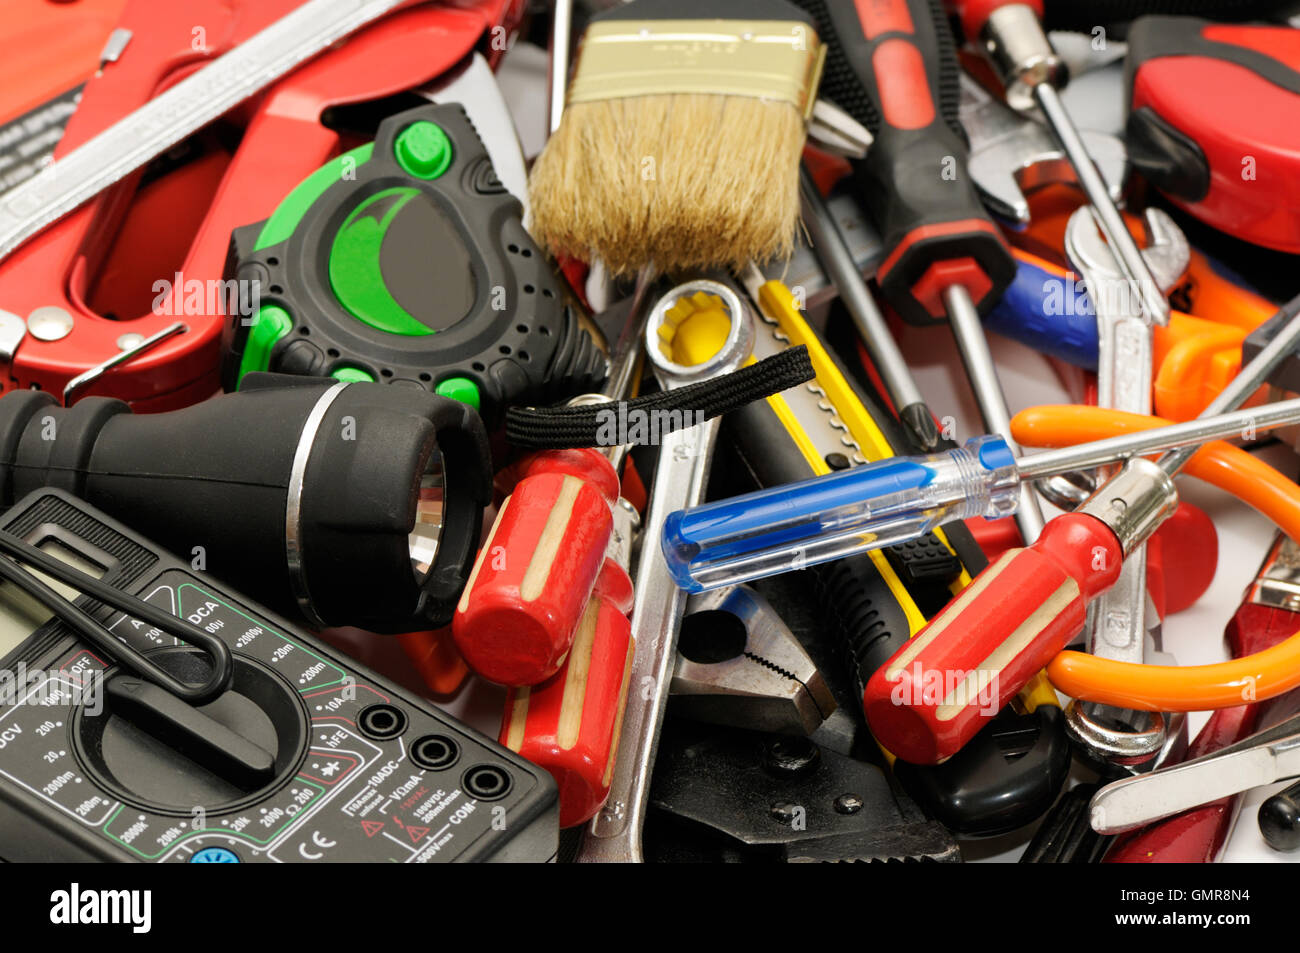 tools on a white background - Stock Image